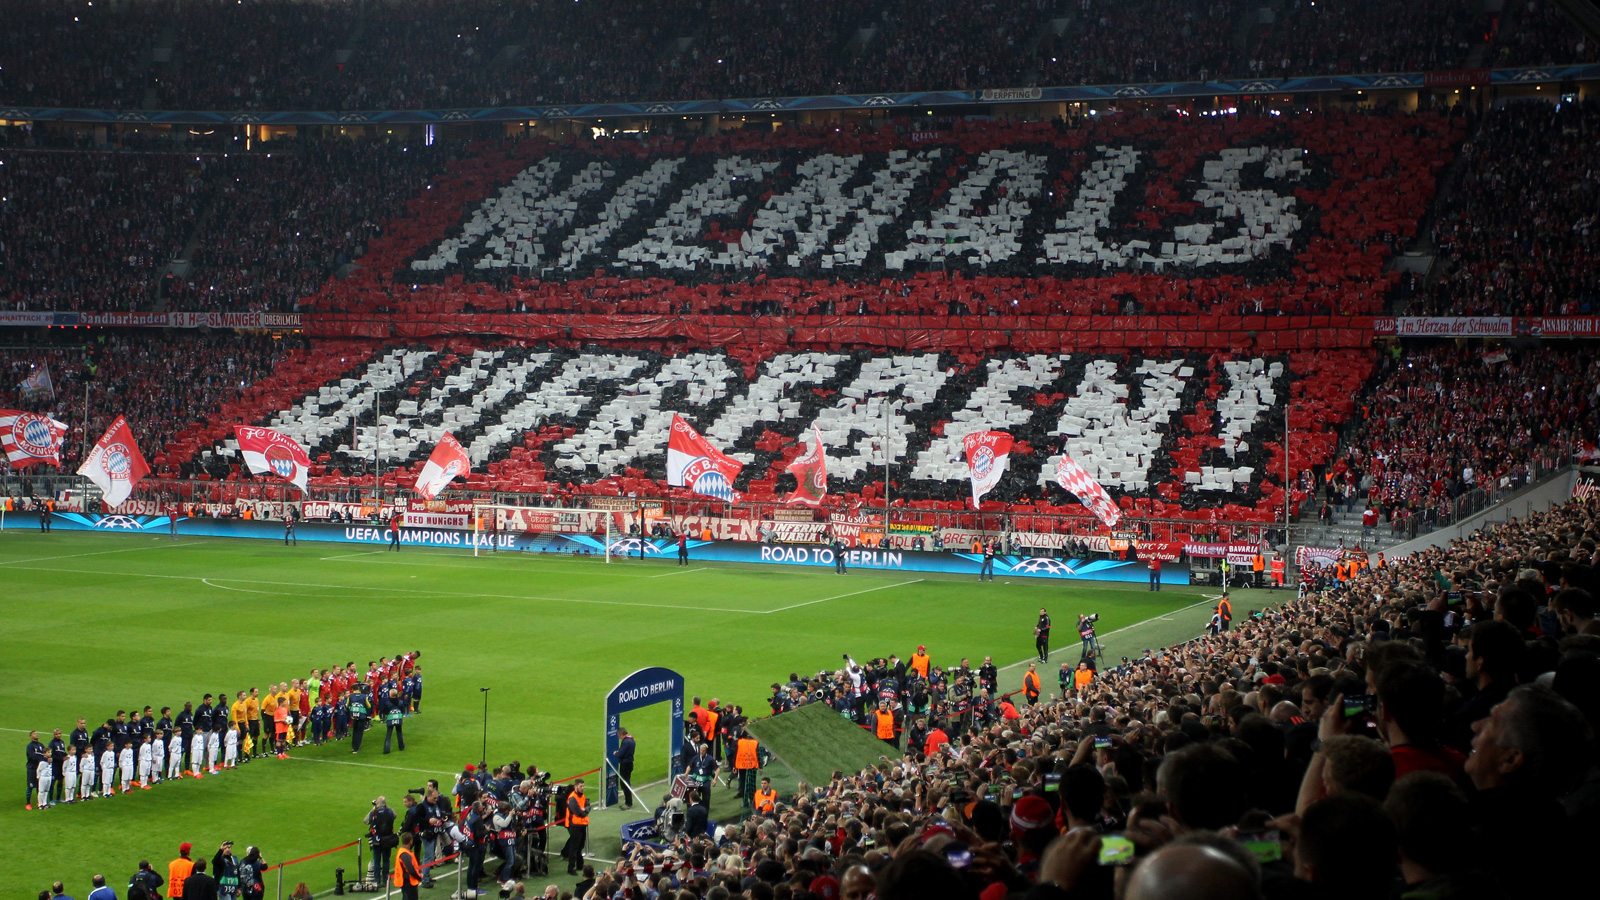 "Bayern Munich fans implore their club to (translated) ""Never give up"" in the Champions League quarterfinal second leg vs. Porto. Bayern then turned a 3-1 first-leg deficit into a 7-4 aggregate win and a place in the semifinals."